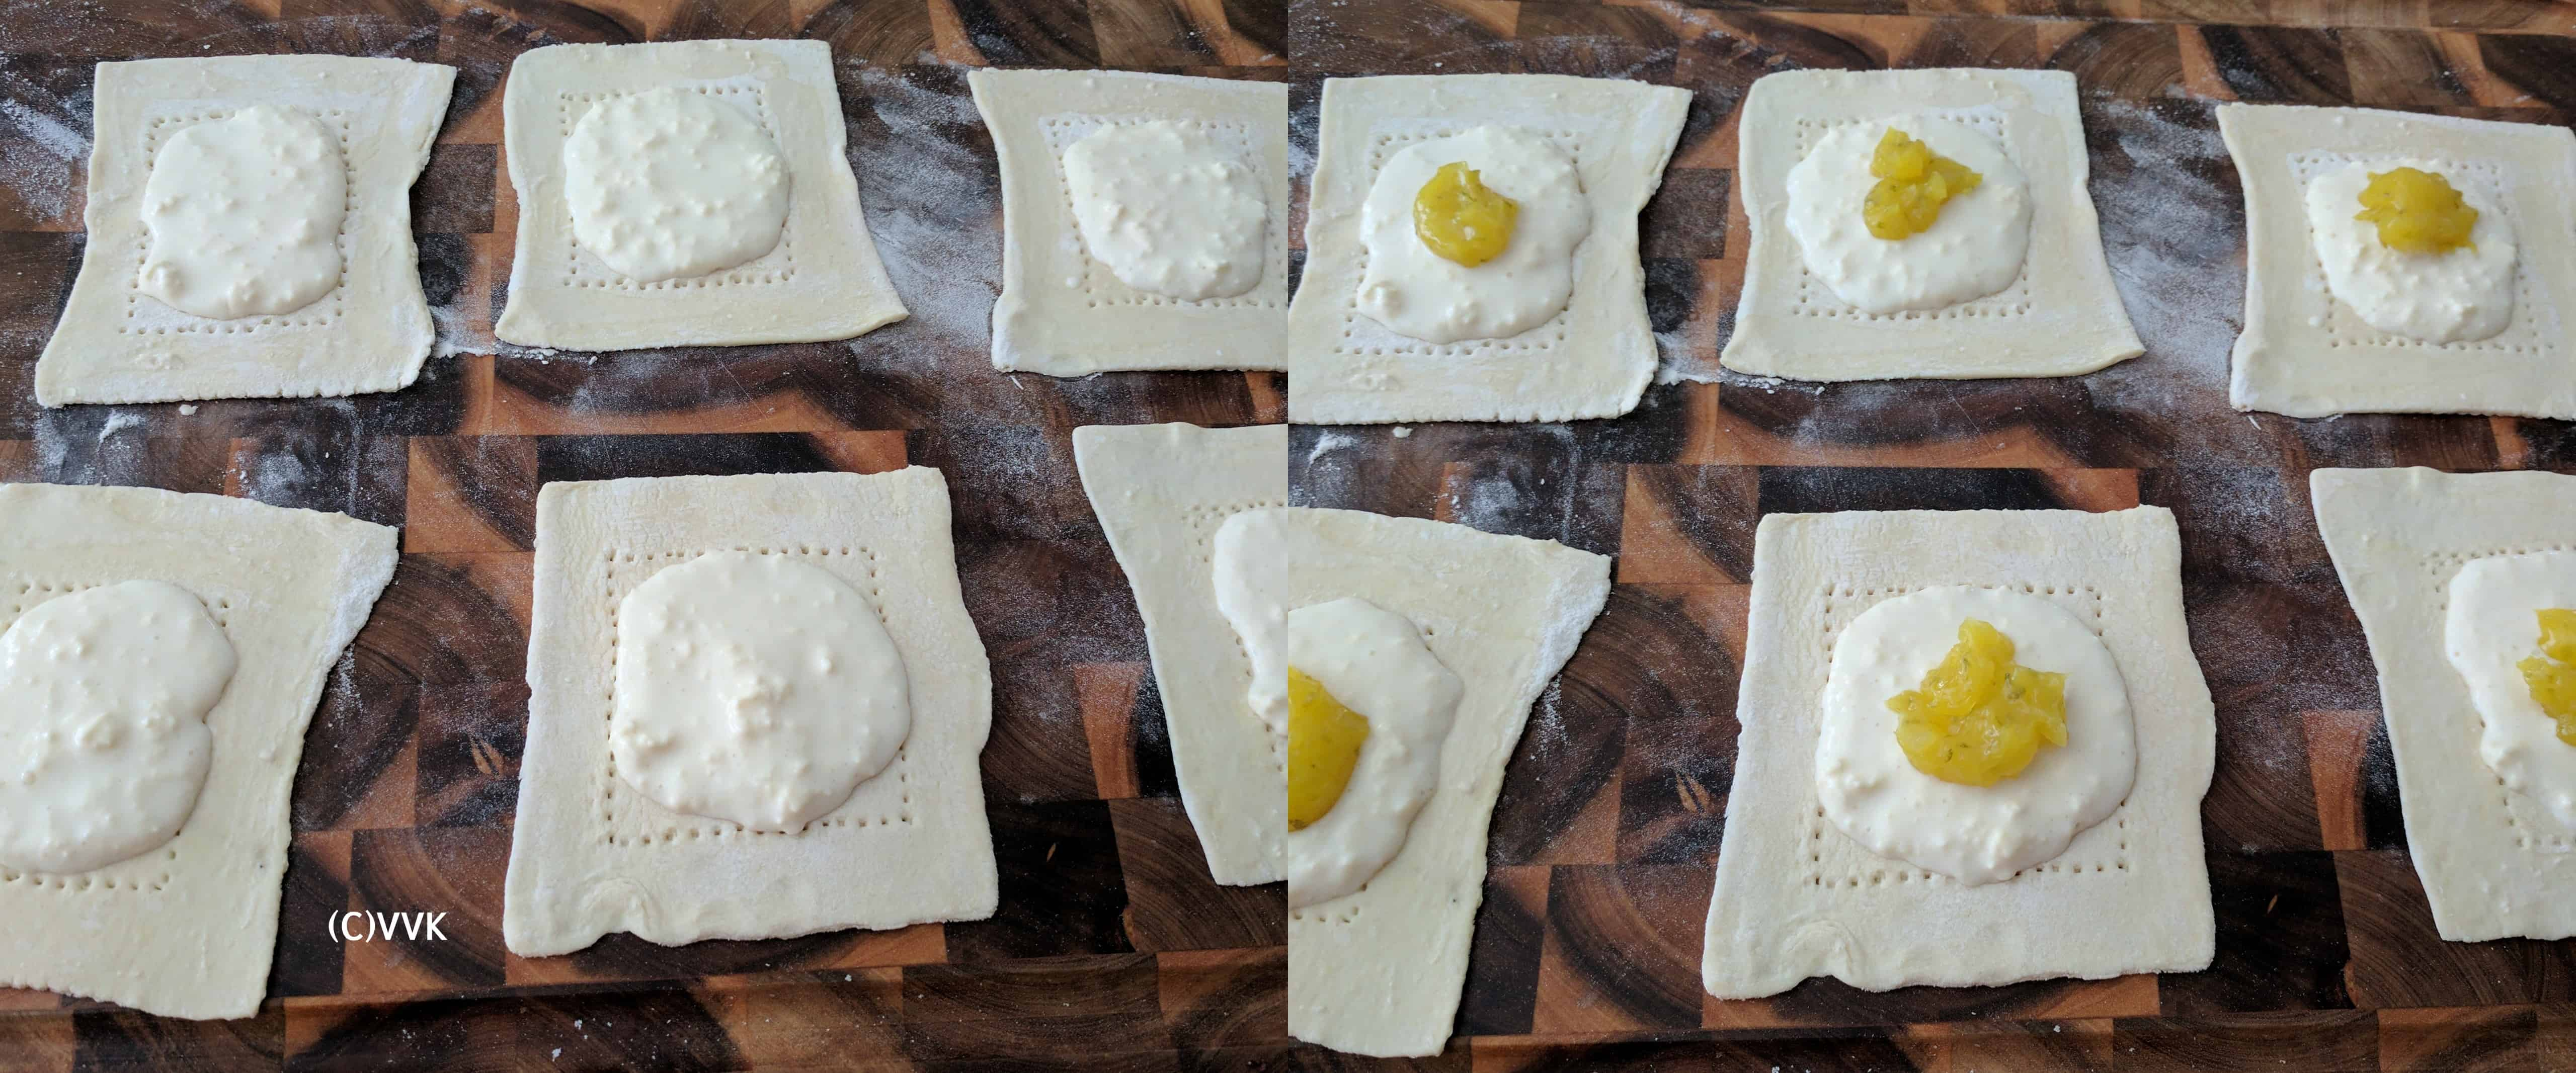 Filling the center of the dough with cheese mix and then spreading the lemon curd